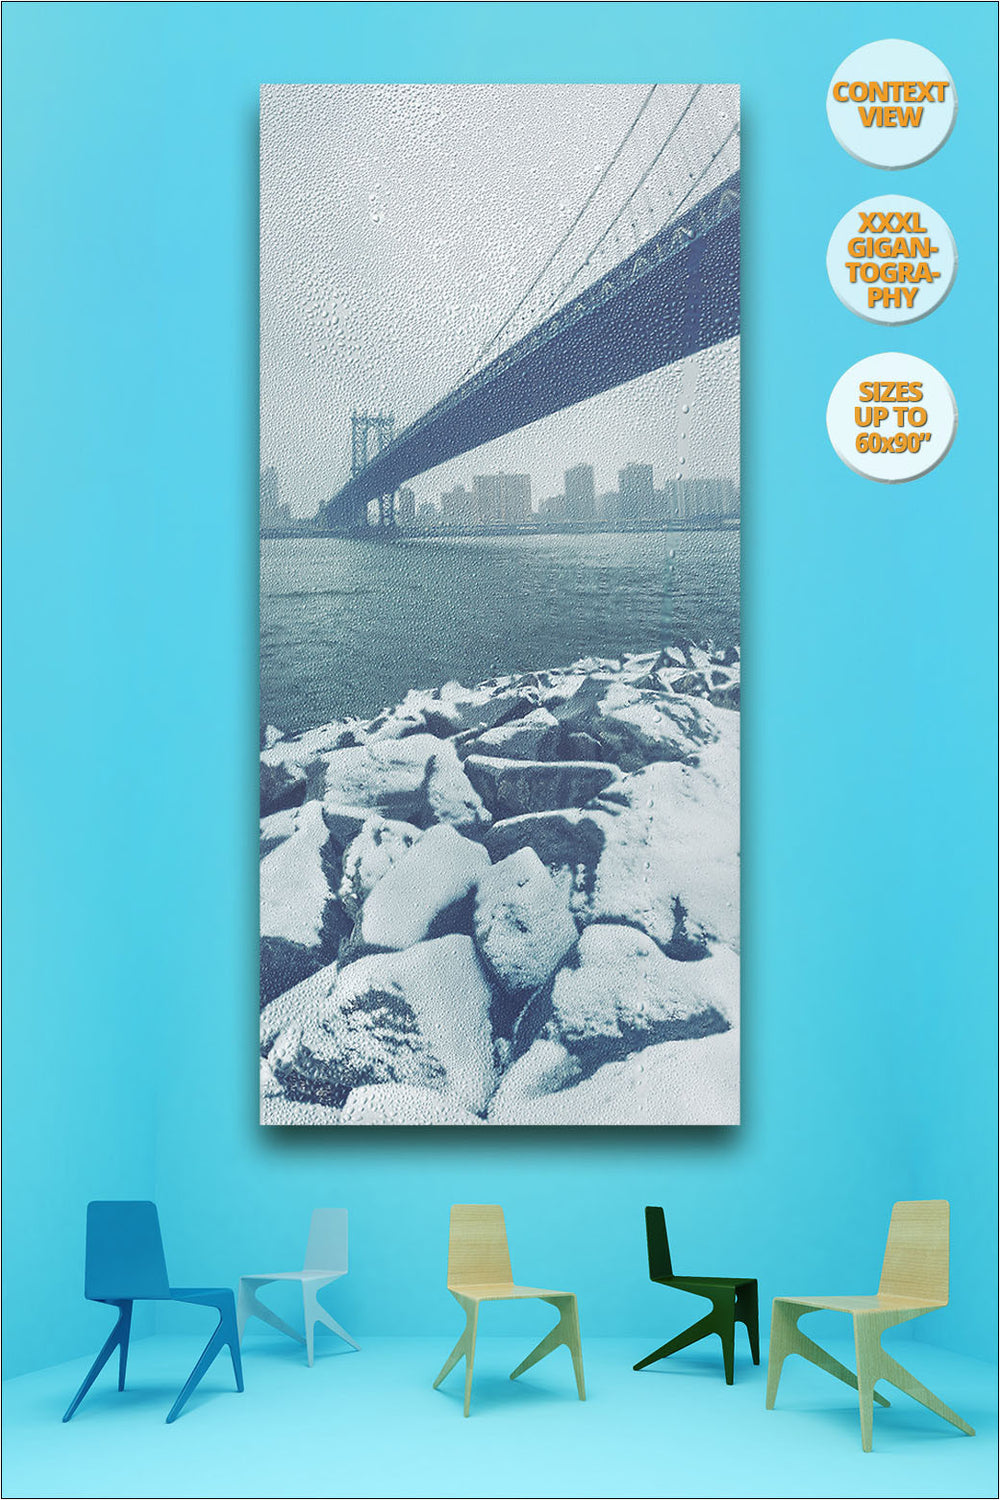 Manhattan Bridge in Blizzard, Winter, New York. | View of Giant Print hanged in office.